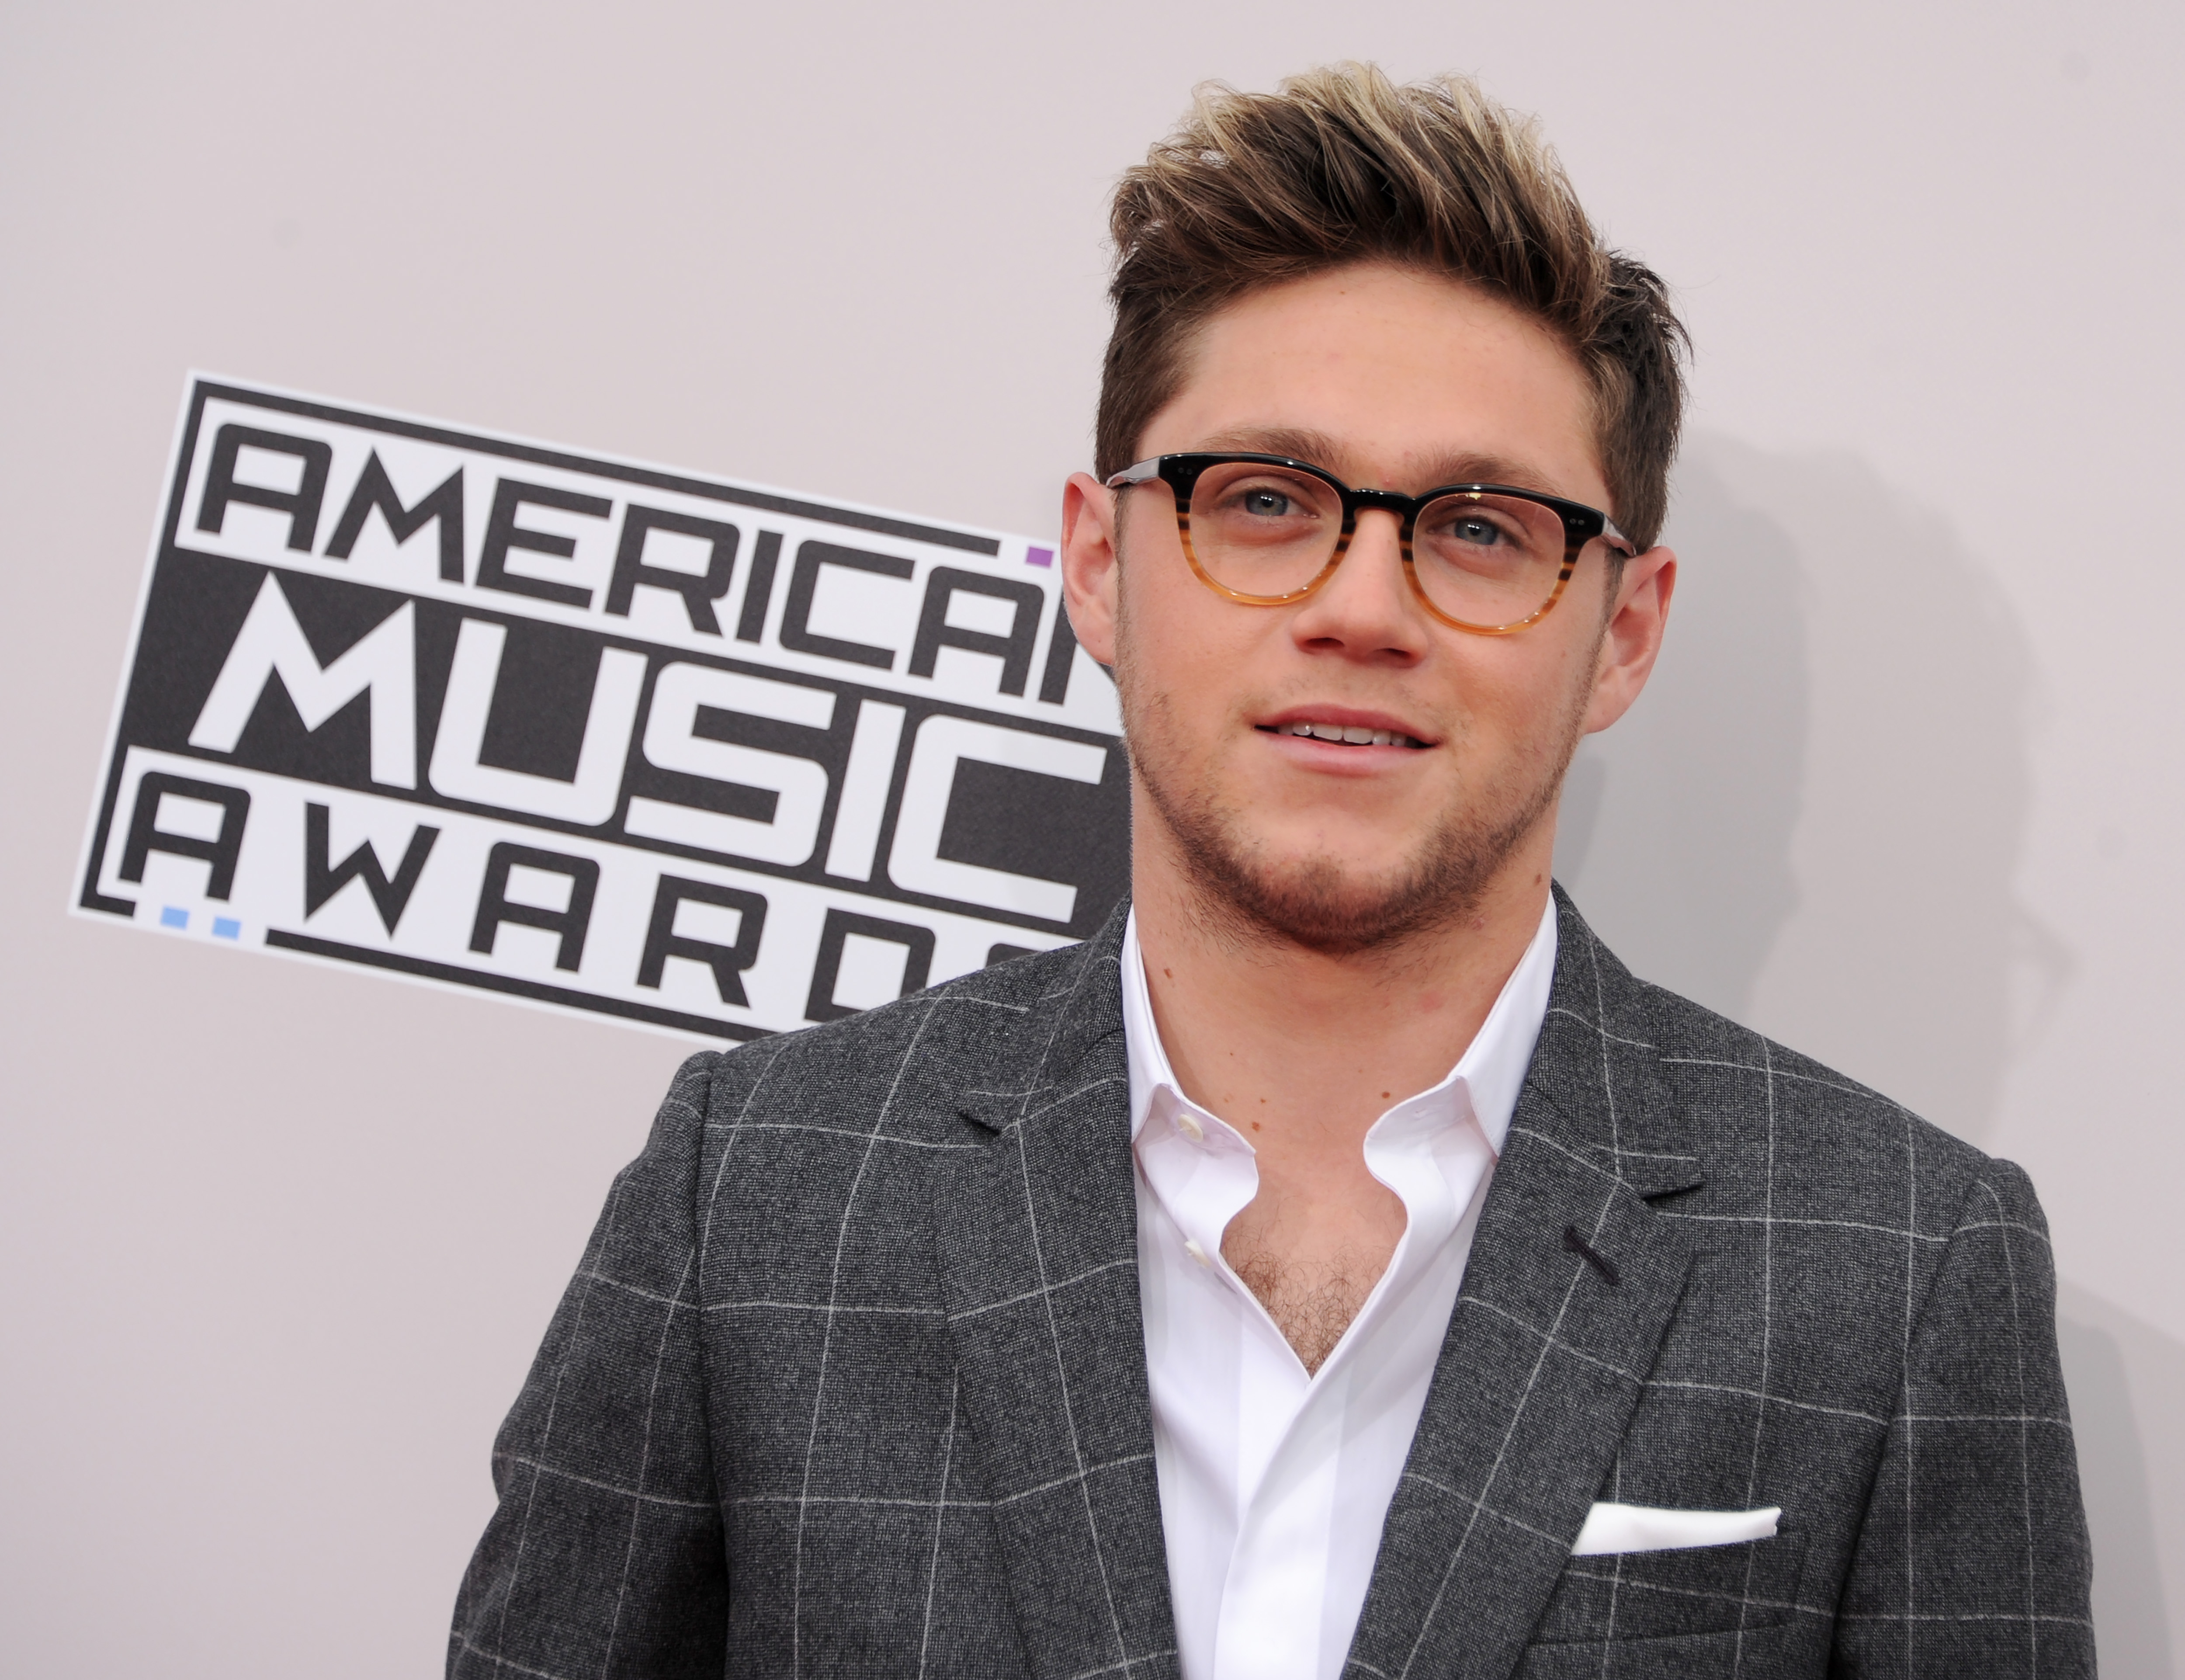 Niall Horan arrives at the 2016 American Music Awards at Microsoft Theater on November 20, 2016.